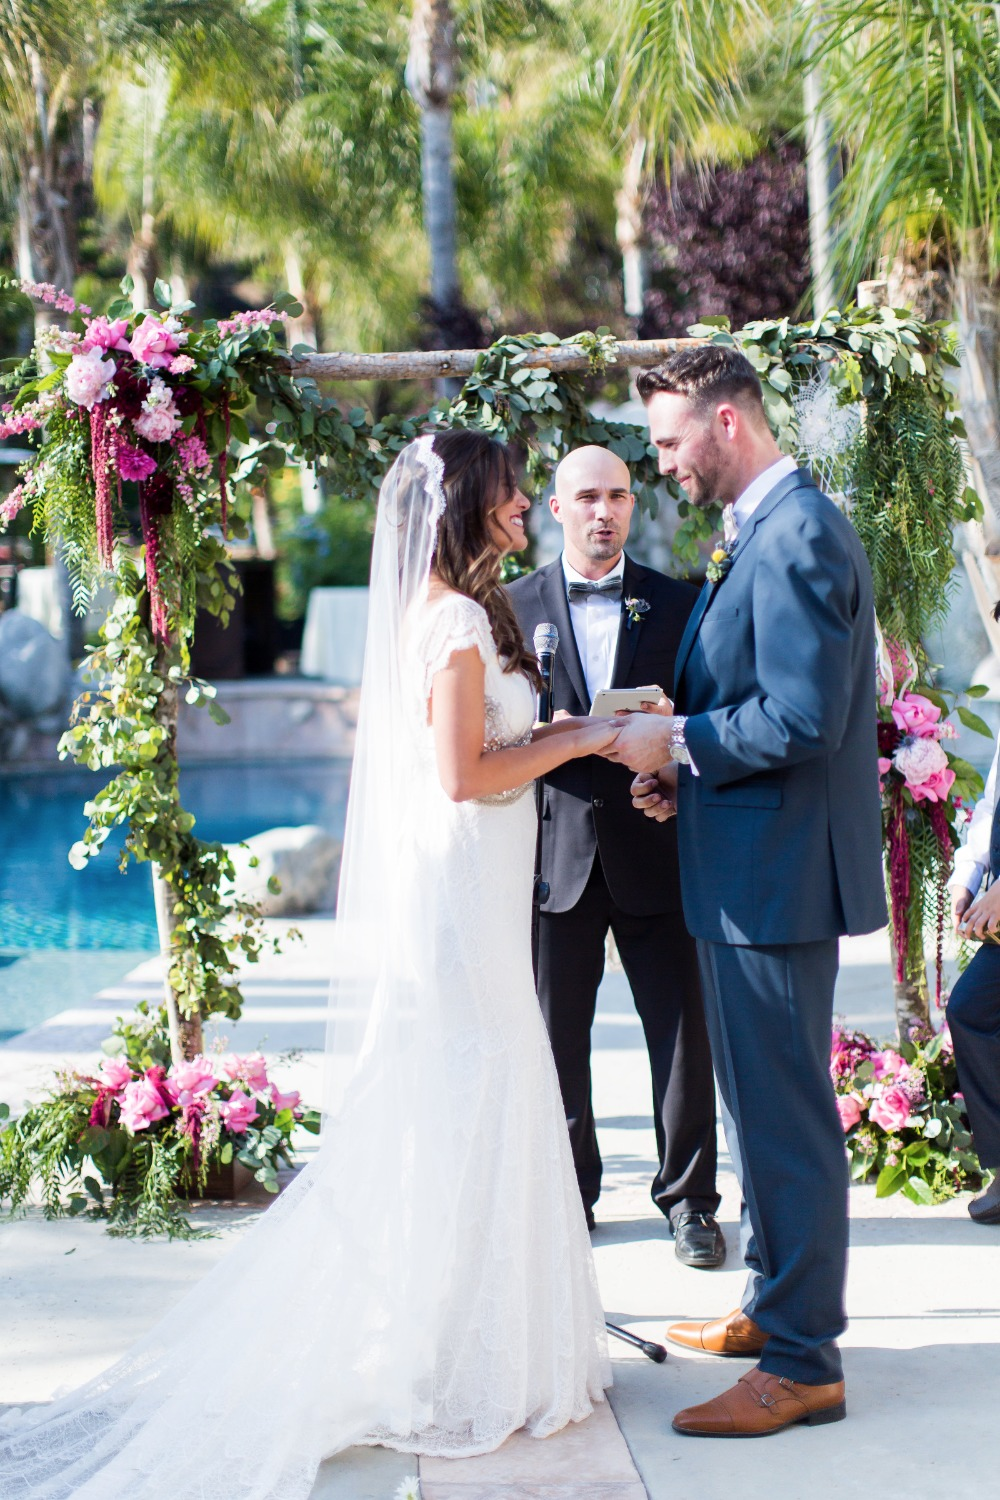 The sweetest outdoor reception